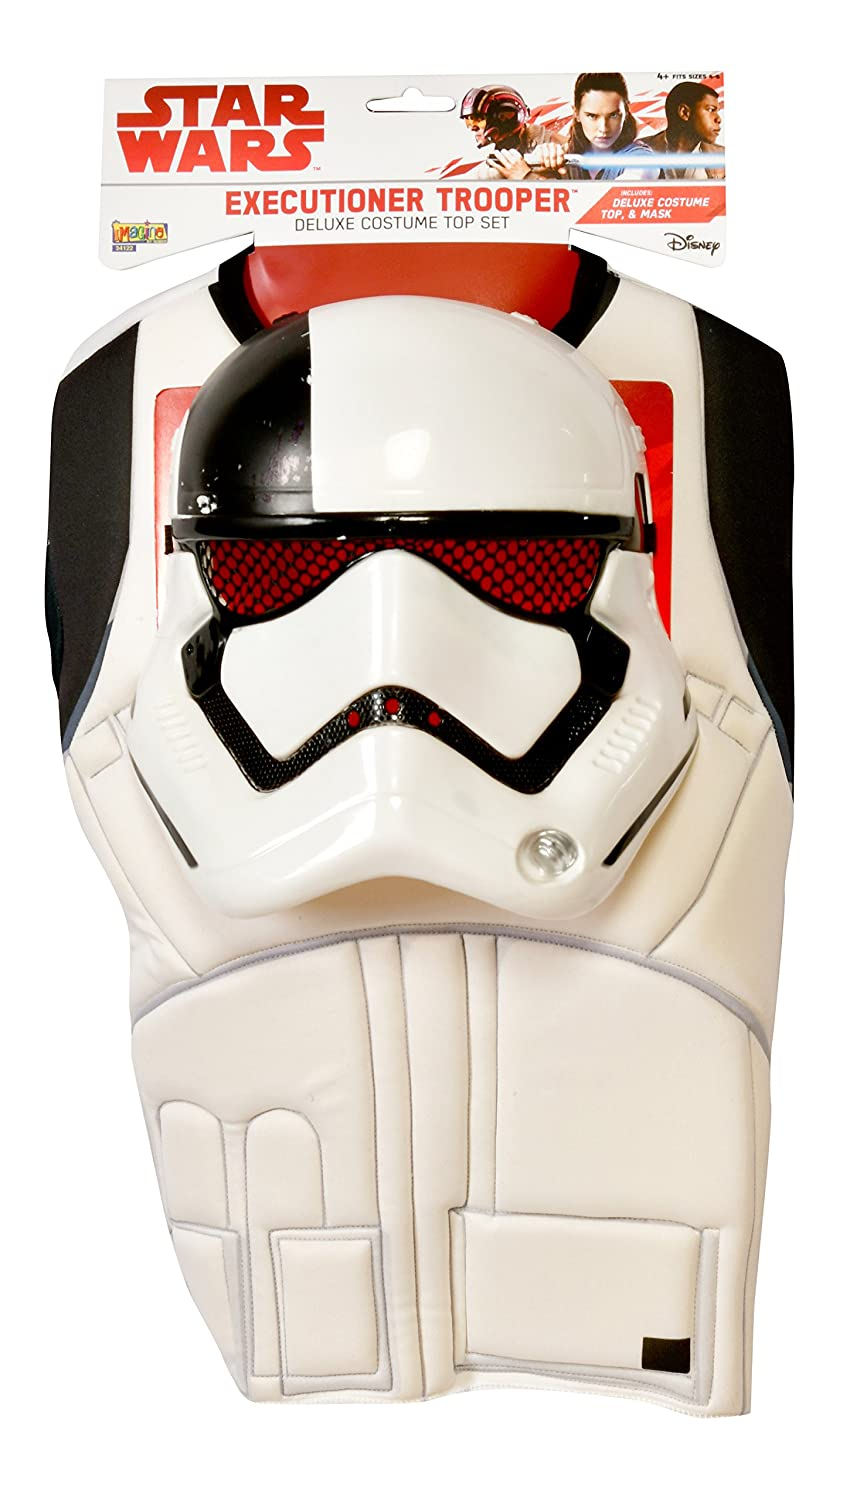 The Last Jedi Executioner Trooper Costume Top and Mask Imagine by Rubies G34122 Star Wars Episode VIII Imagine by Rubies